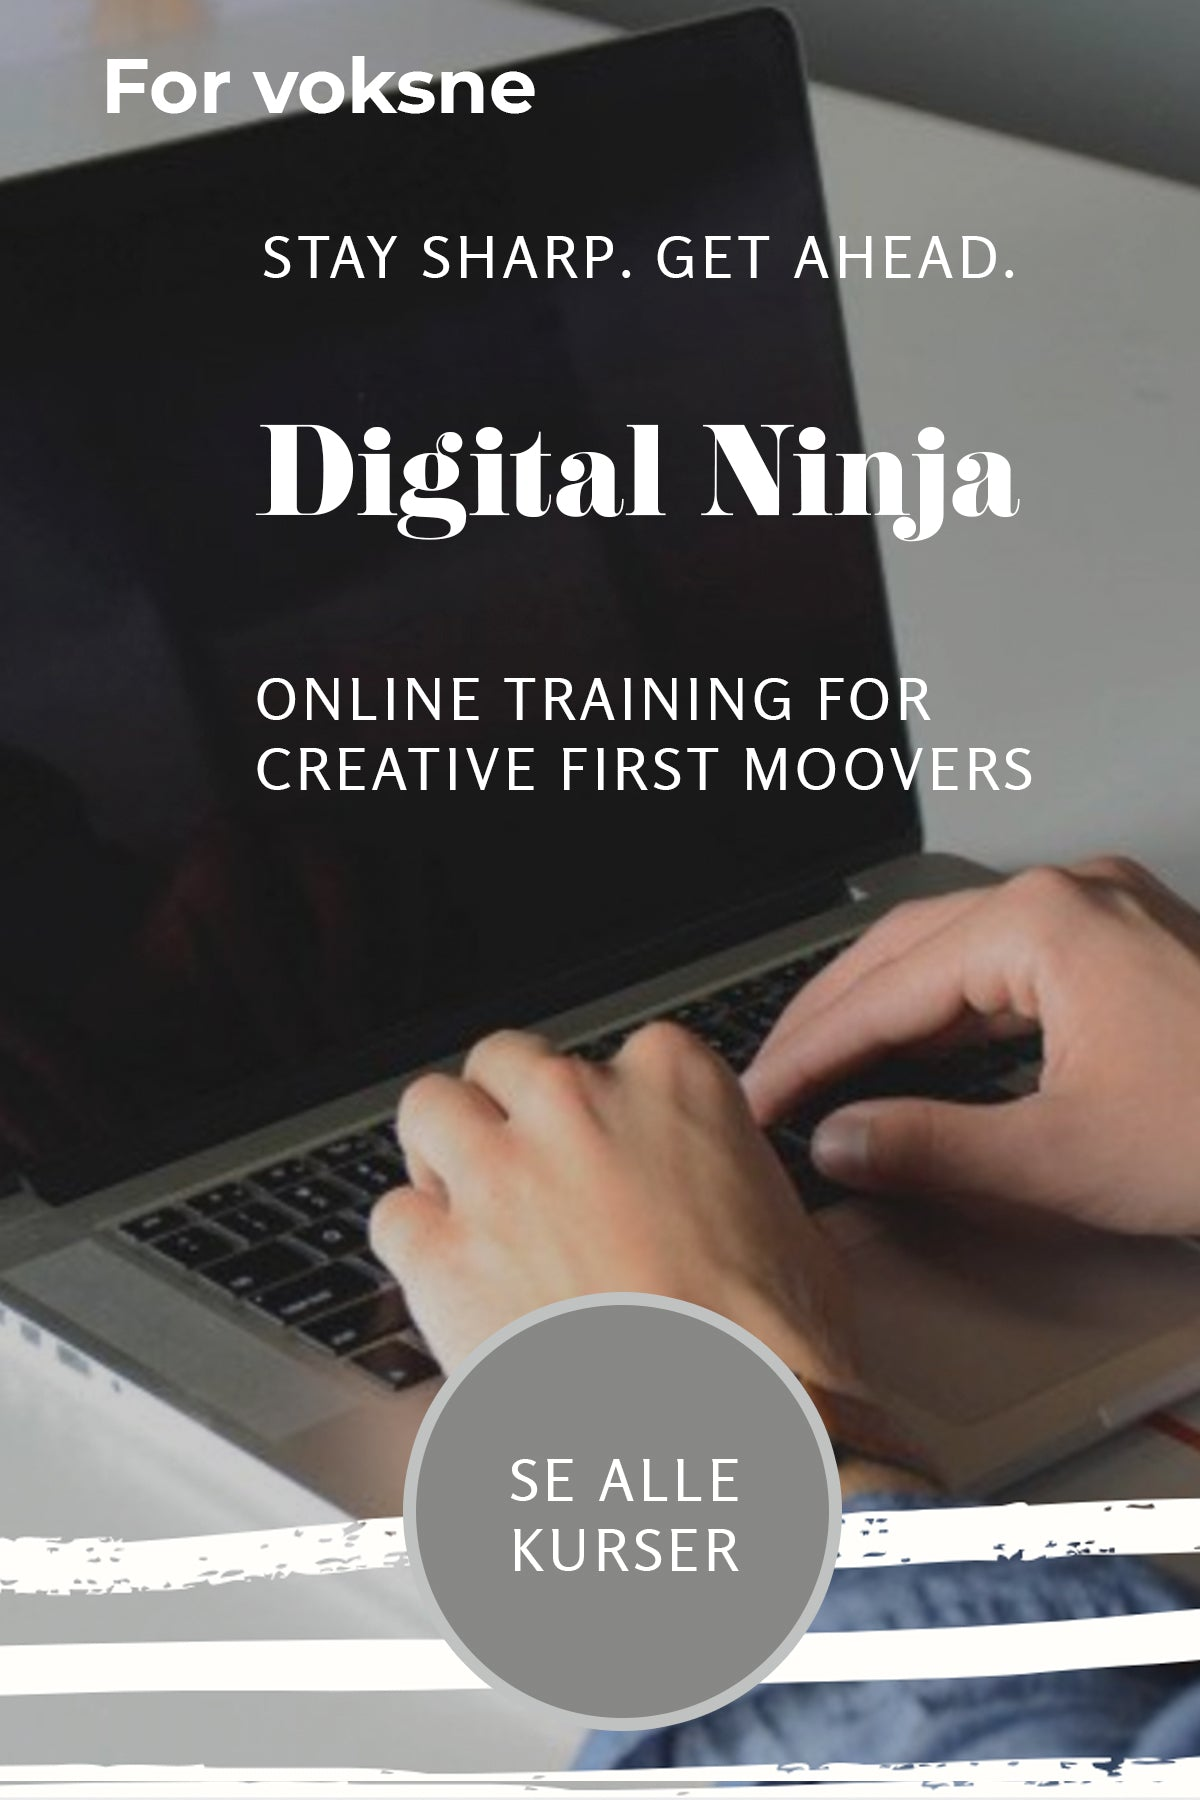 digital ninja marketing branding maiken ingvordsen